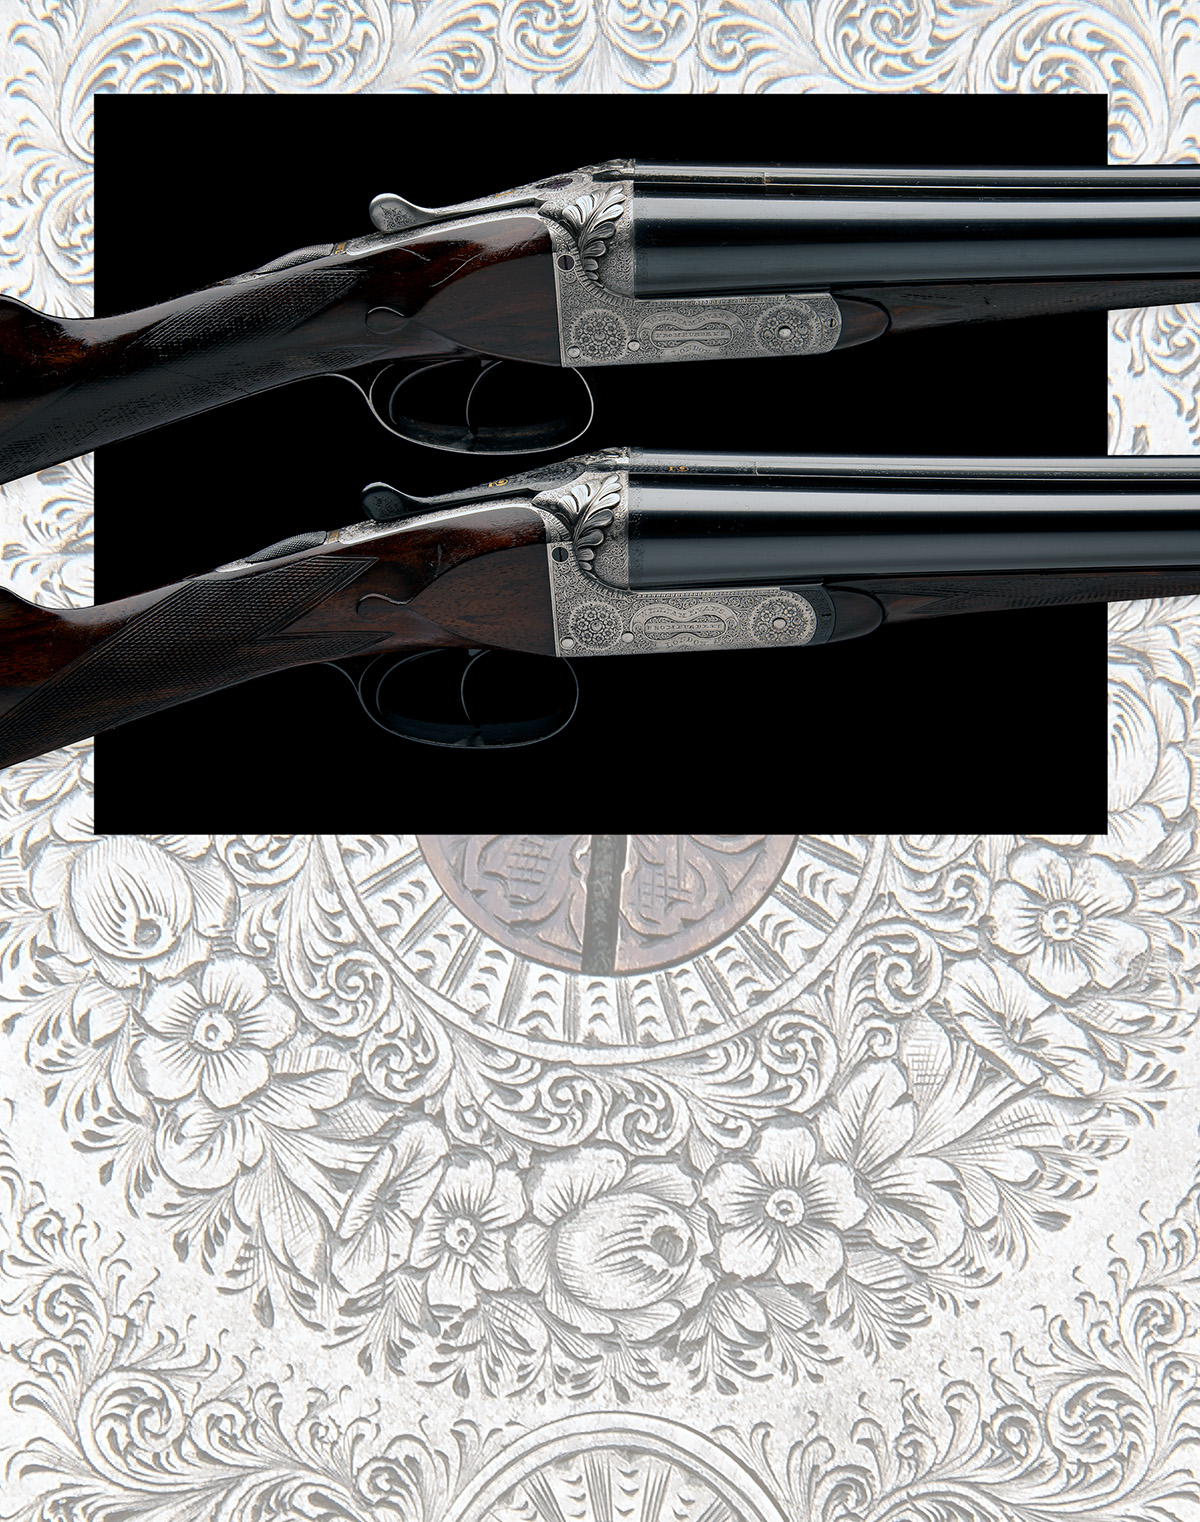 WILLIAM EVANS (FROM PURDEY'S) A PAIR OF 12-BORE BOXLOCK EJECTORS, serial no. 5433 / 4, for 1901, - Image 11 of 11